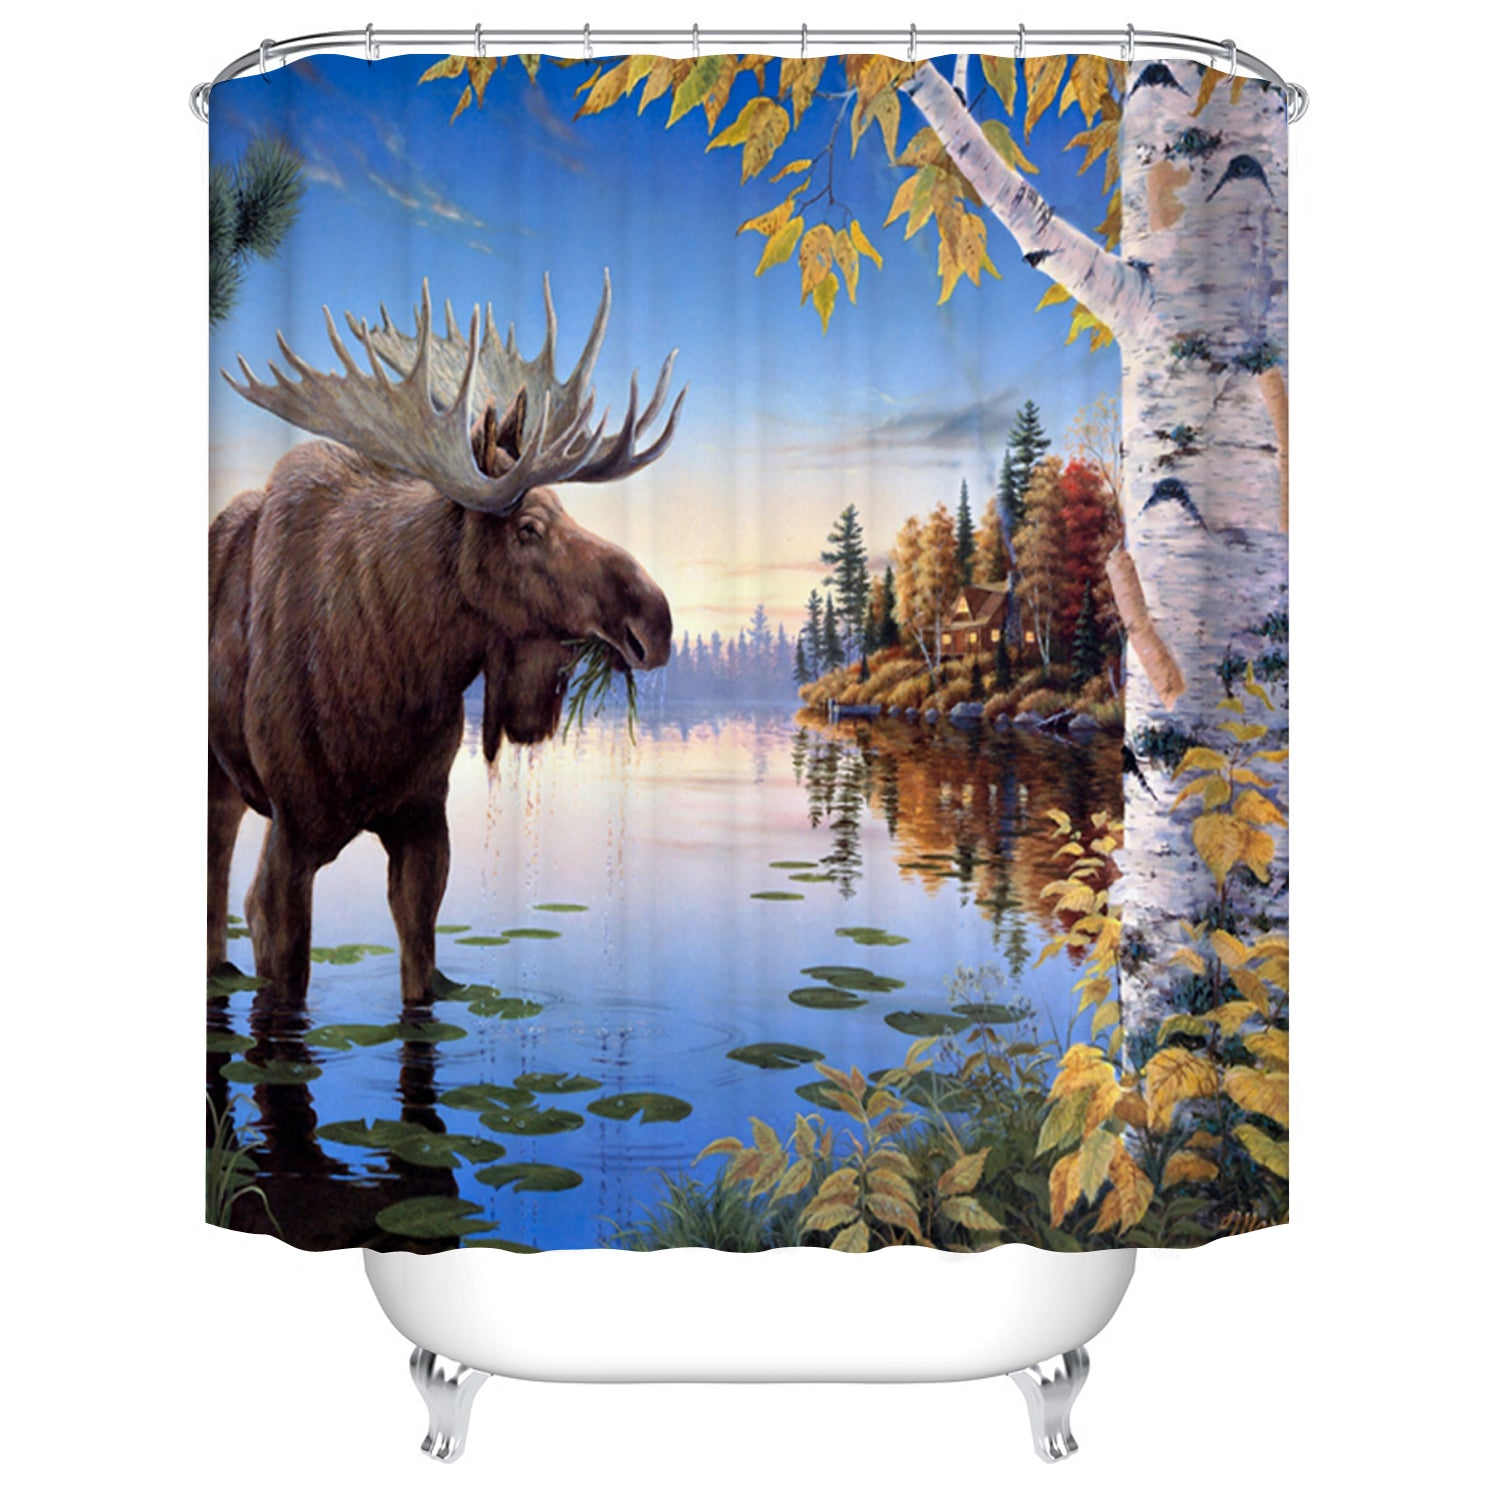 Mountain River Birch Tree Wildlife Moose Shower Curtain